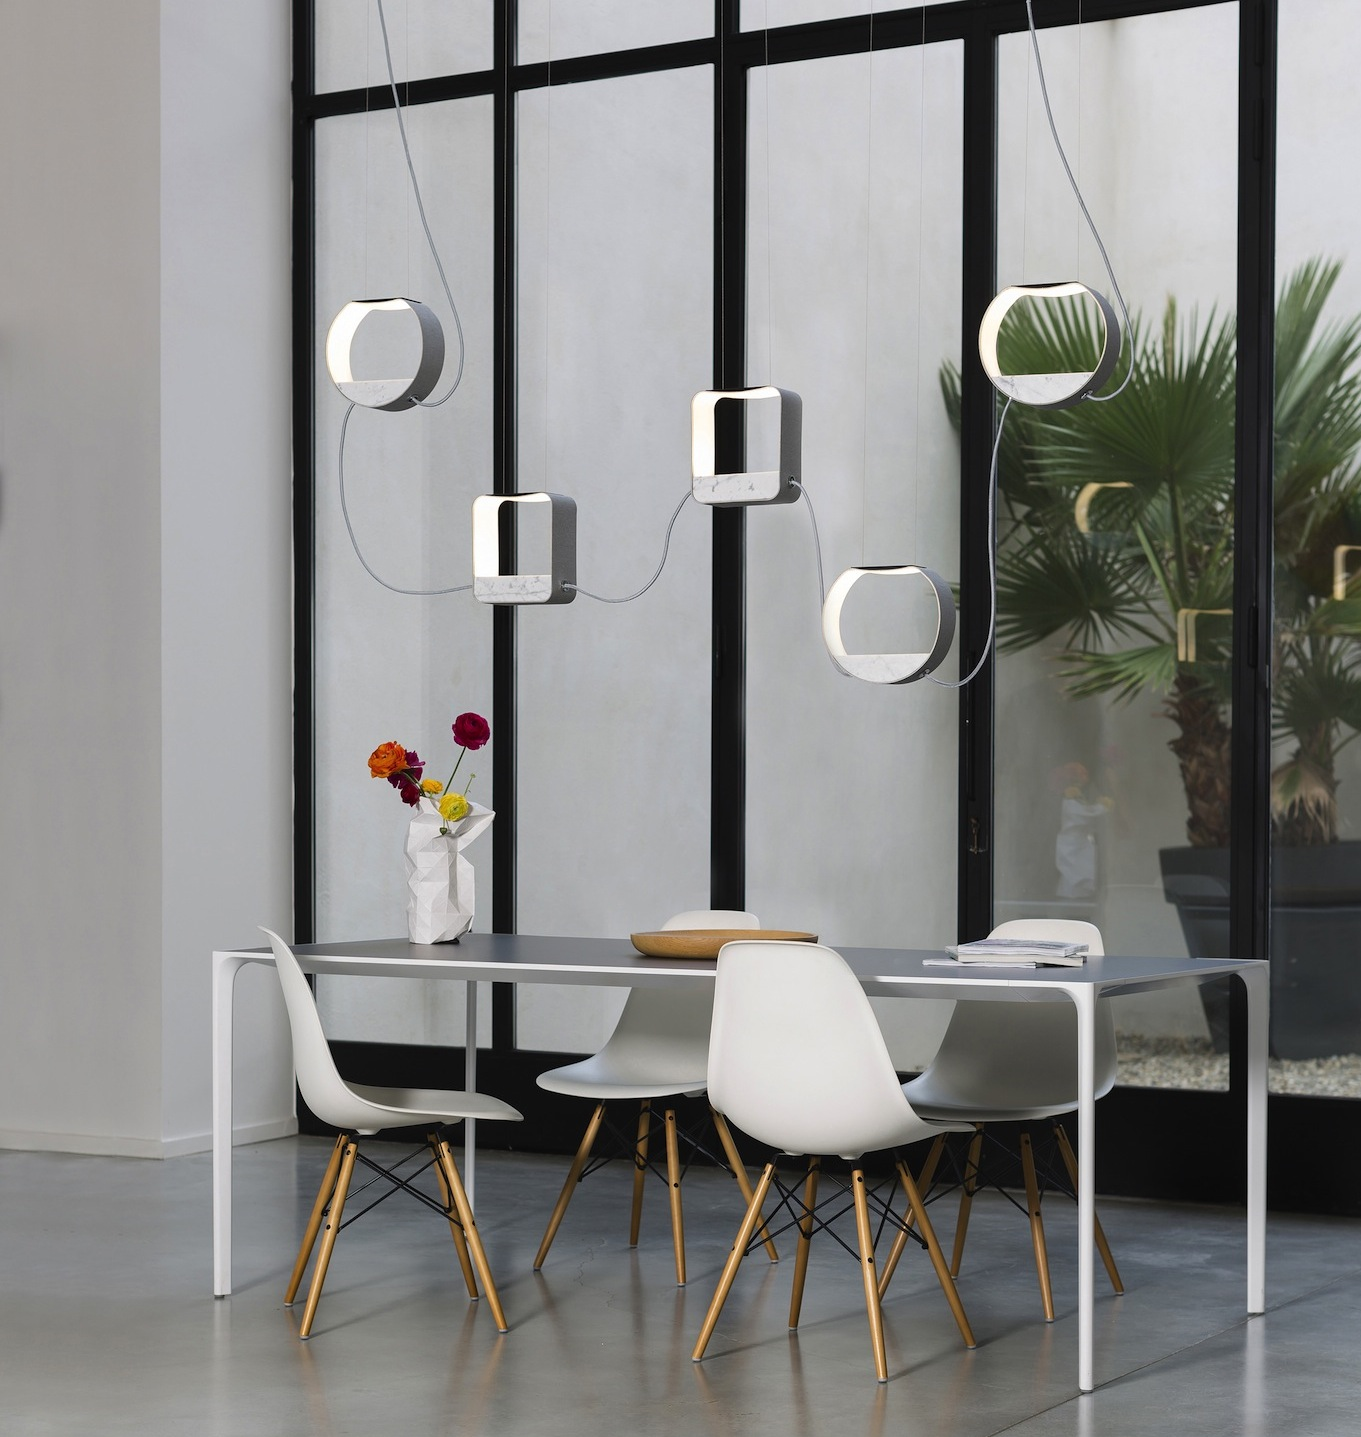 Suspension luminaire g om trique lampe for Luminaire suspension salon